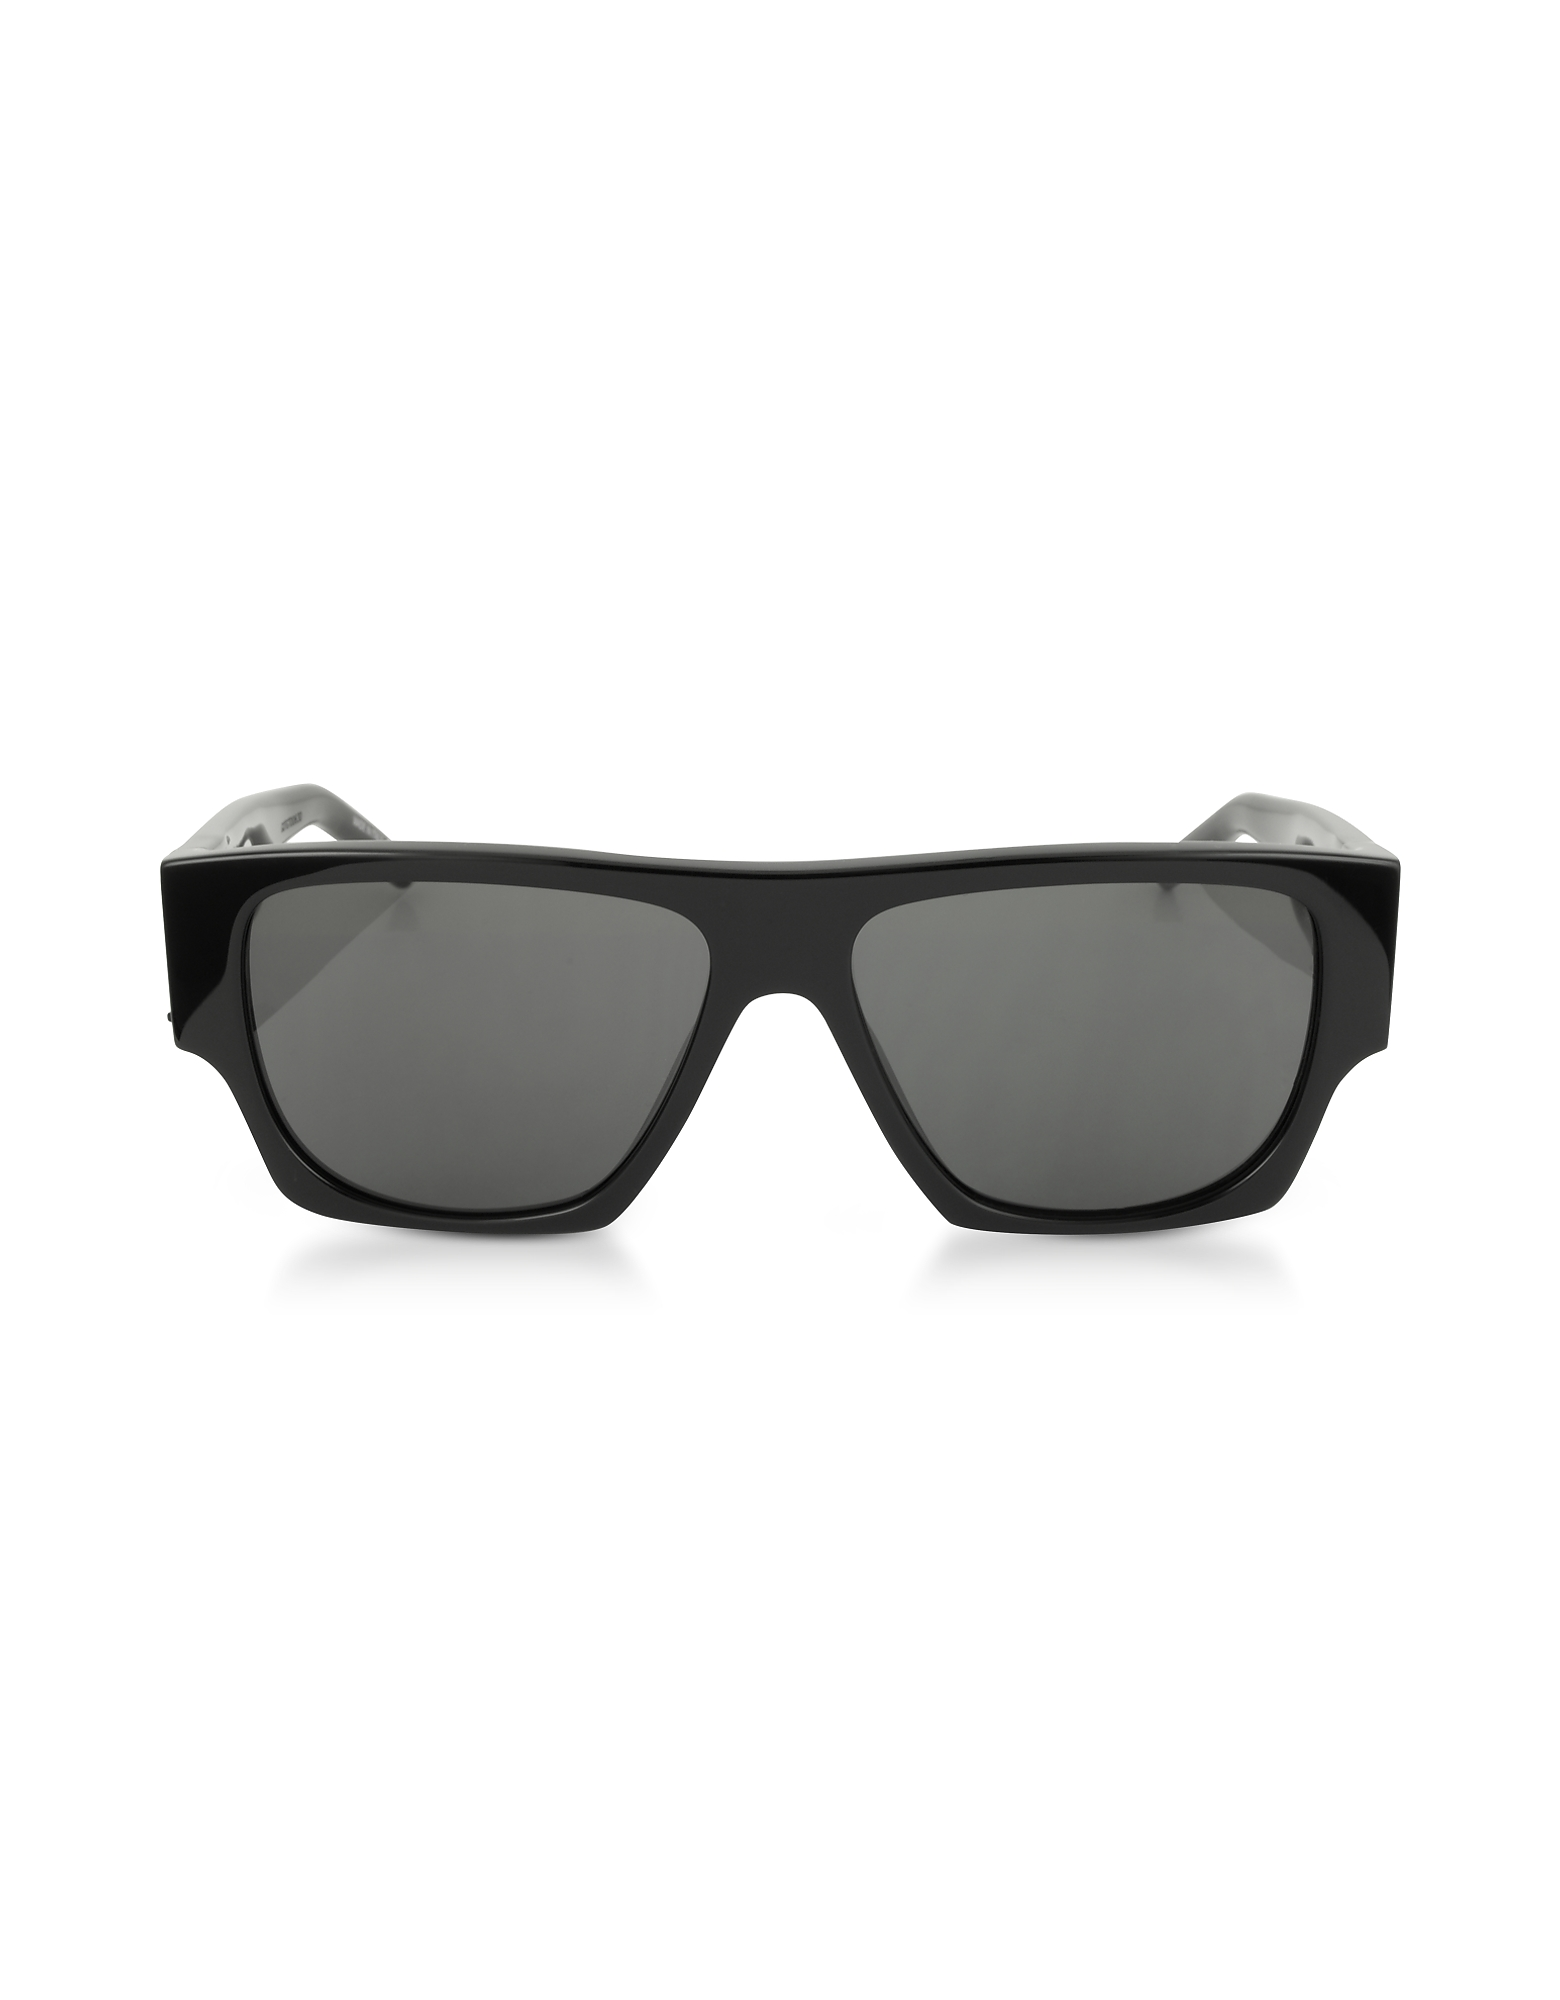 Saint Laurent Designer Sunglasses, SL M17 Rectangle Frame Acetate Men's Sunglasses